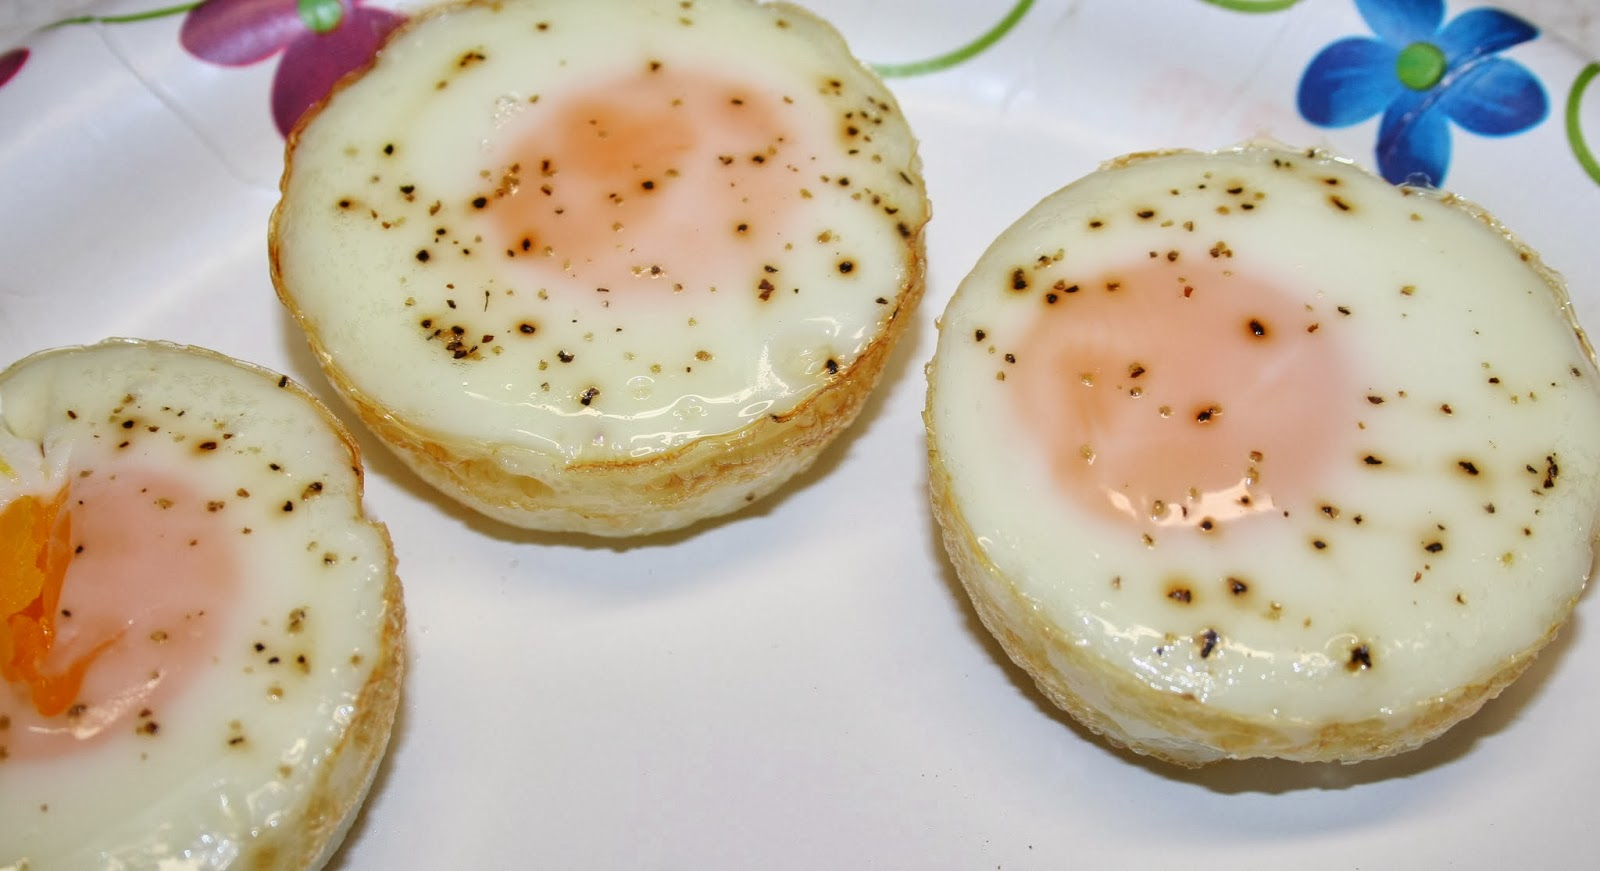 How Many Calories in One Egg: Fried, Boiled, Cooked or Scrambled